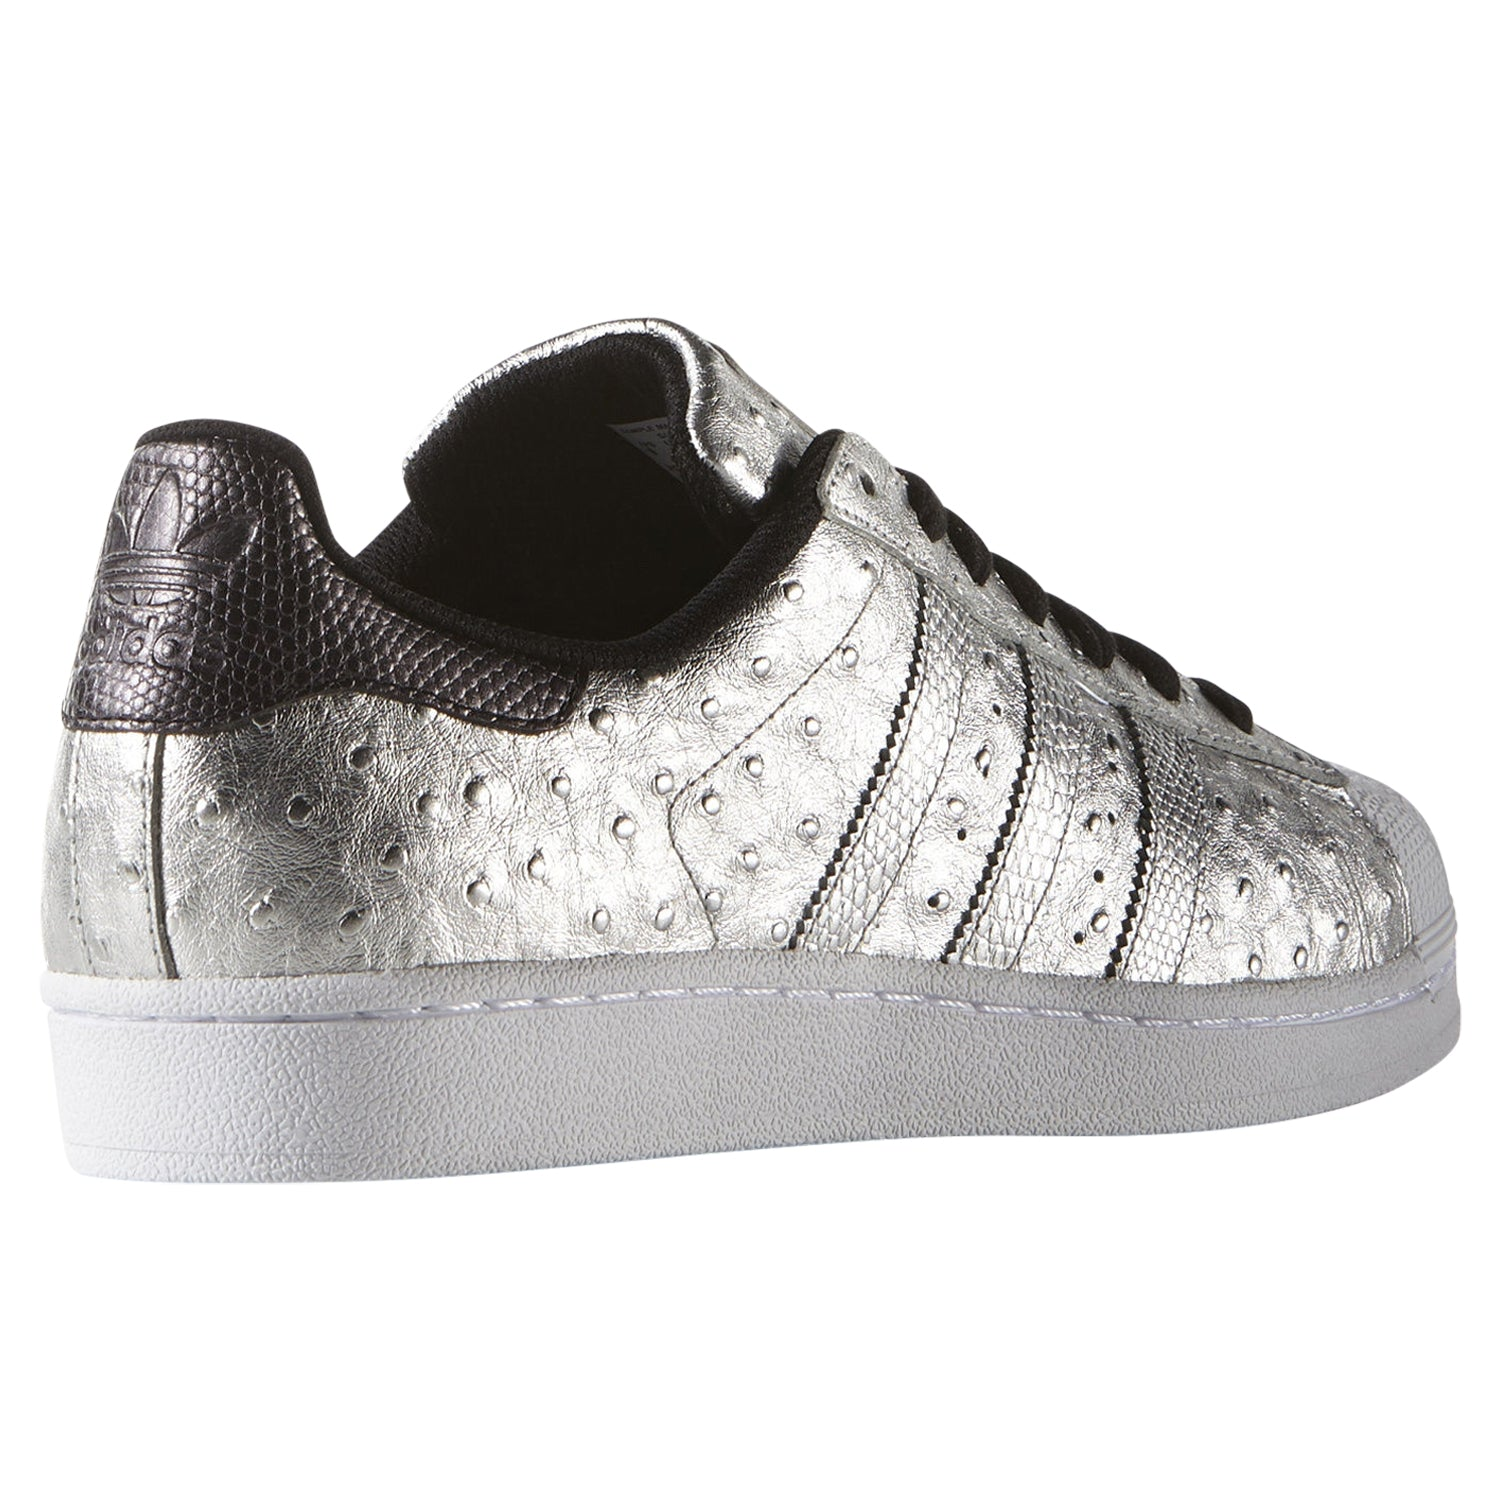 official photos 2f951 8d22c tradesports.co.uk adidas Originals Superstar Men s Trainers Silver ...